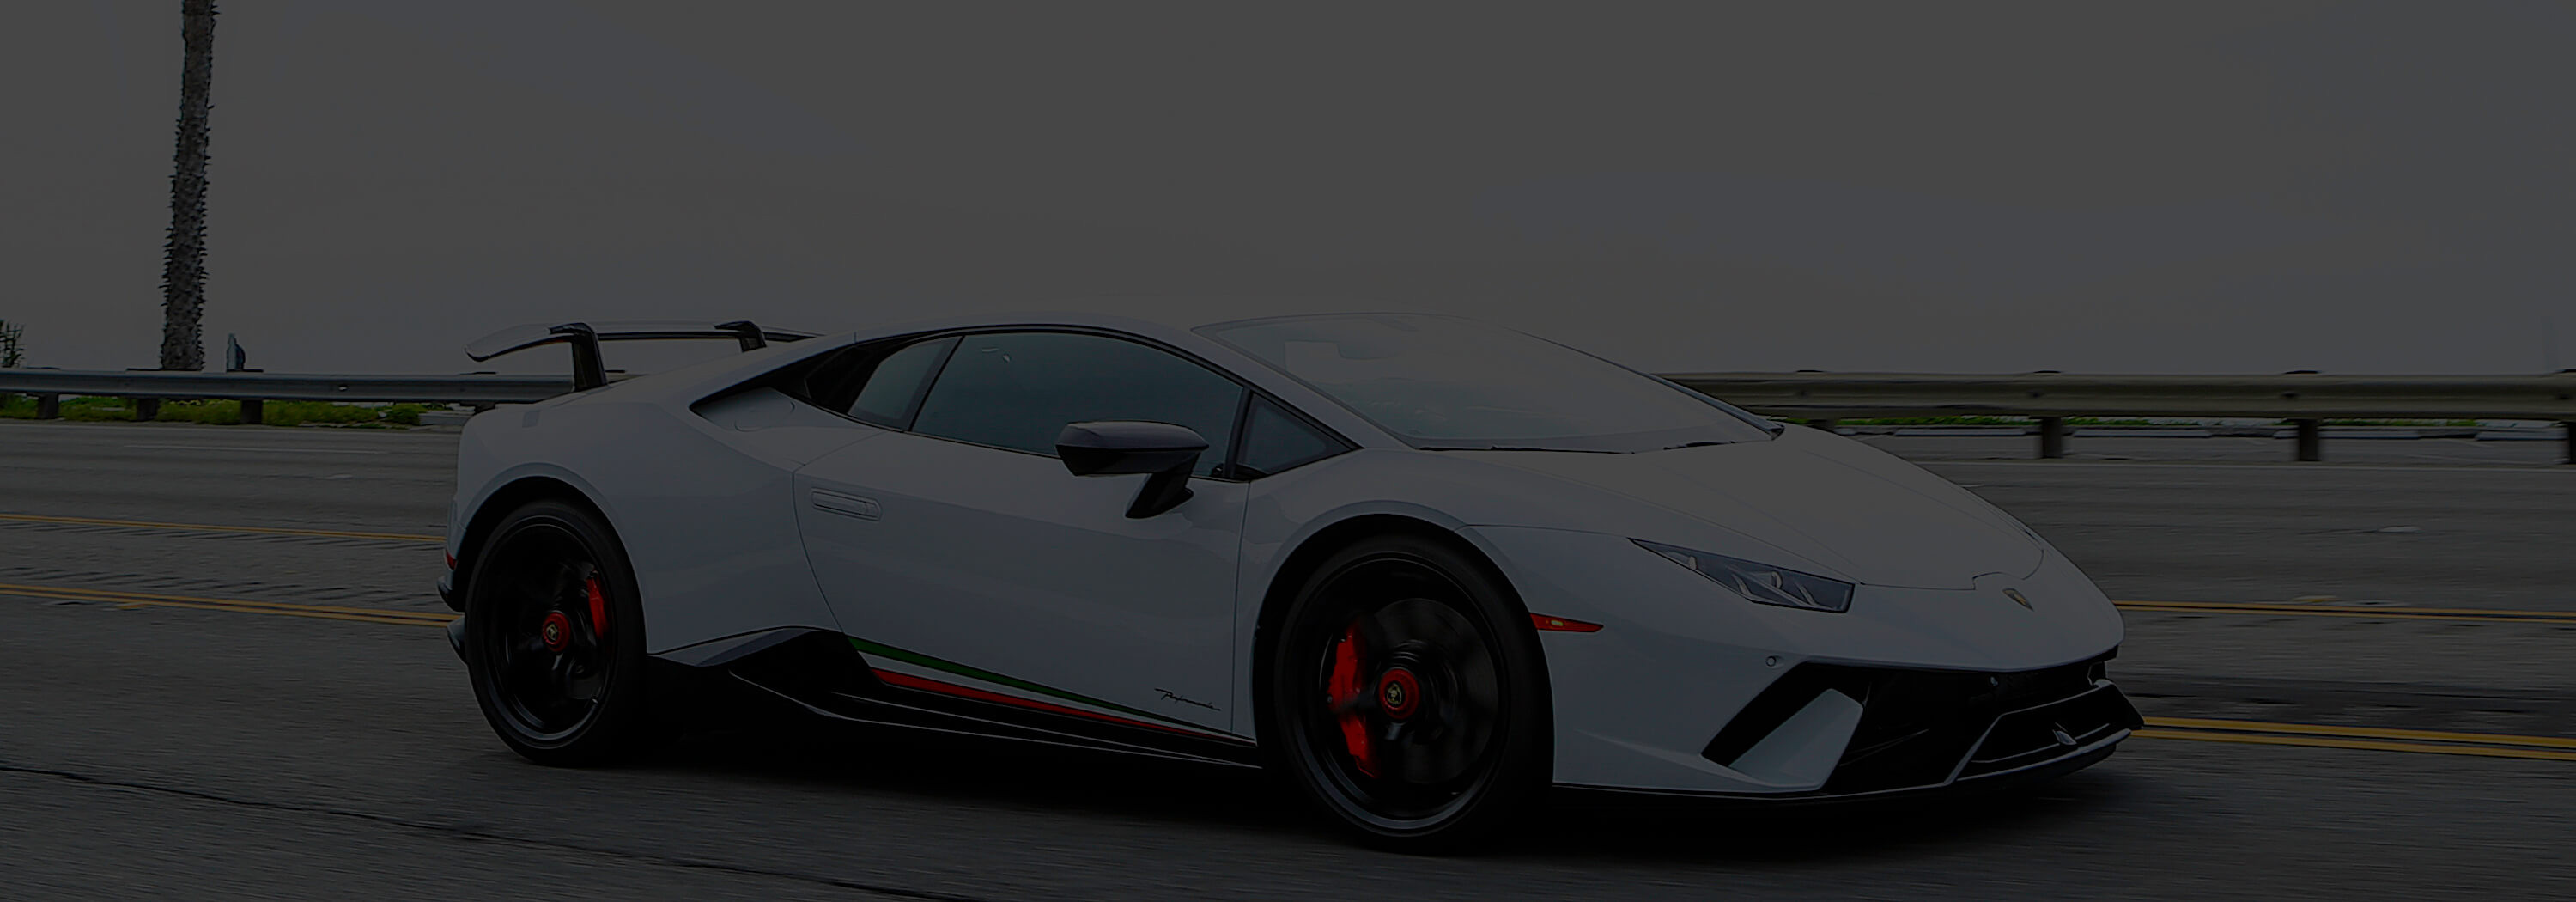 Sports Car Rental Los Angeles